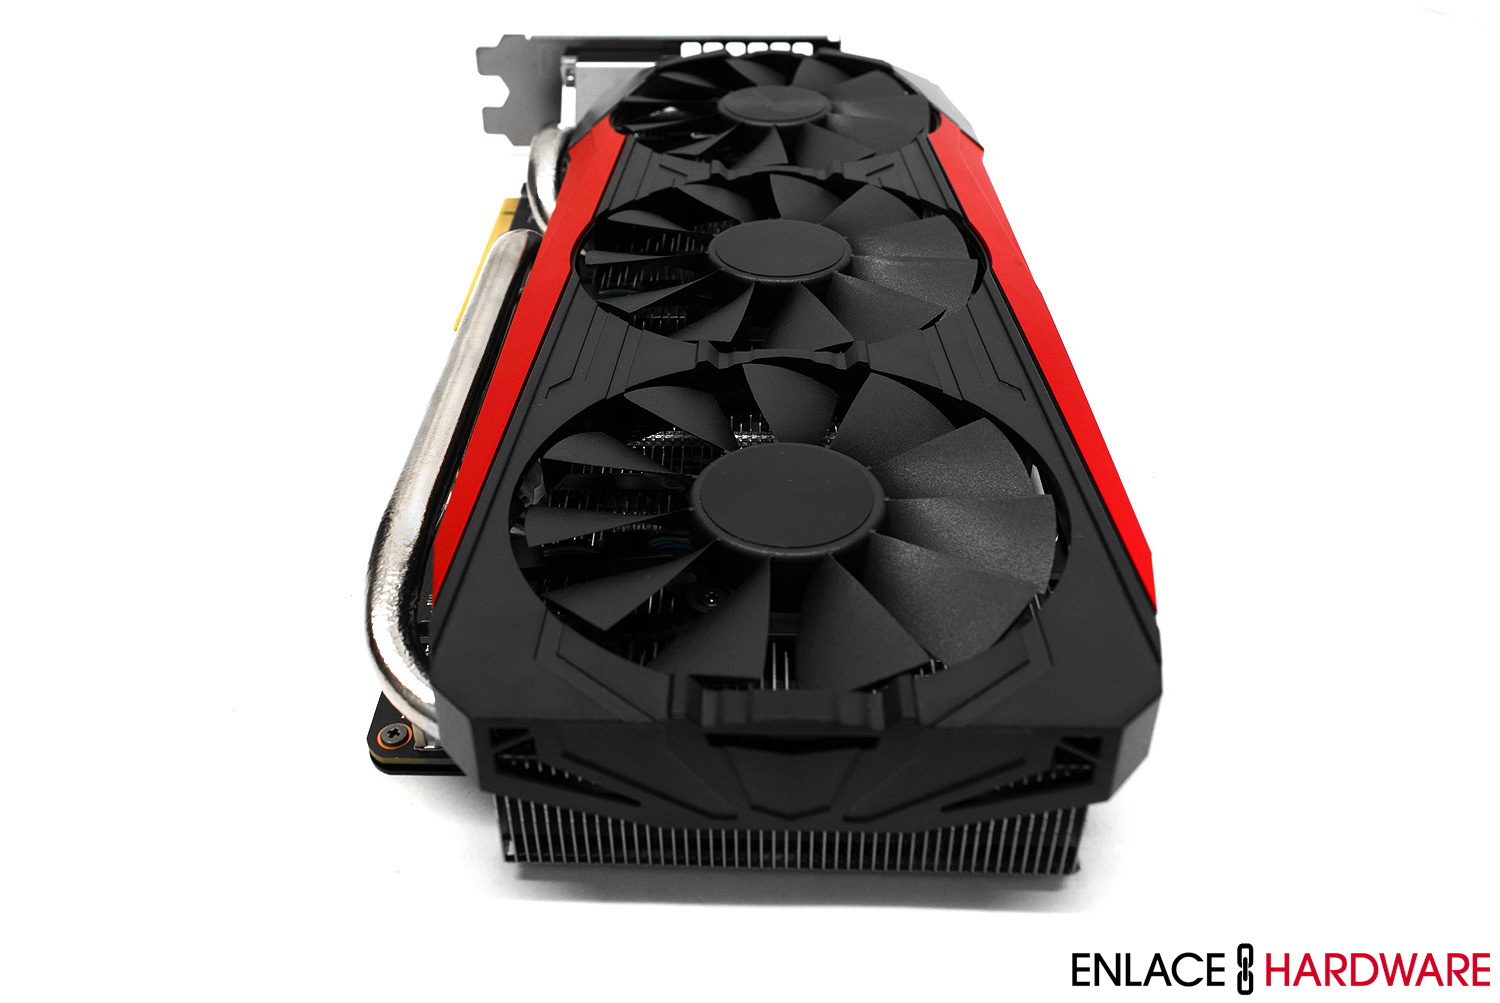 ASUS-Strix-GeForce-GTX-980-Ti-Review-6